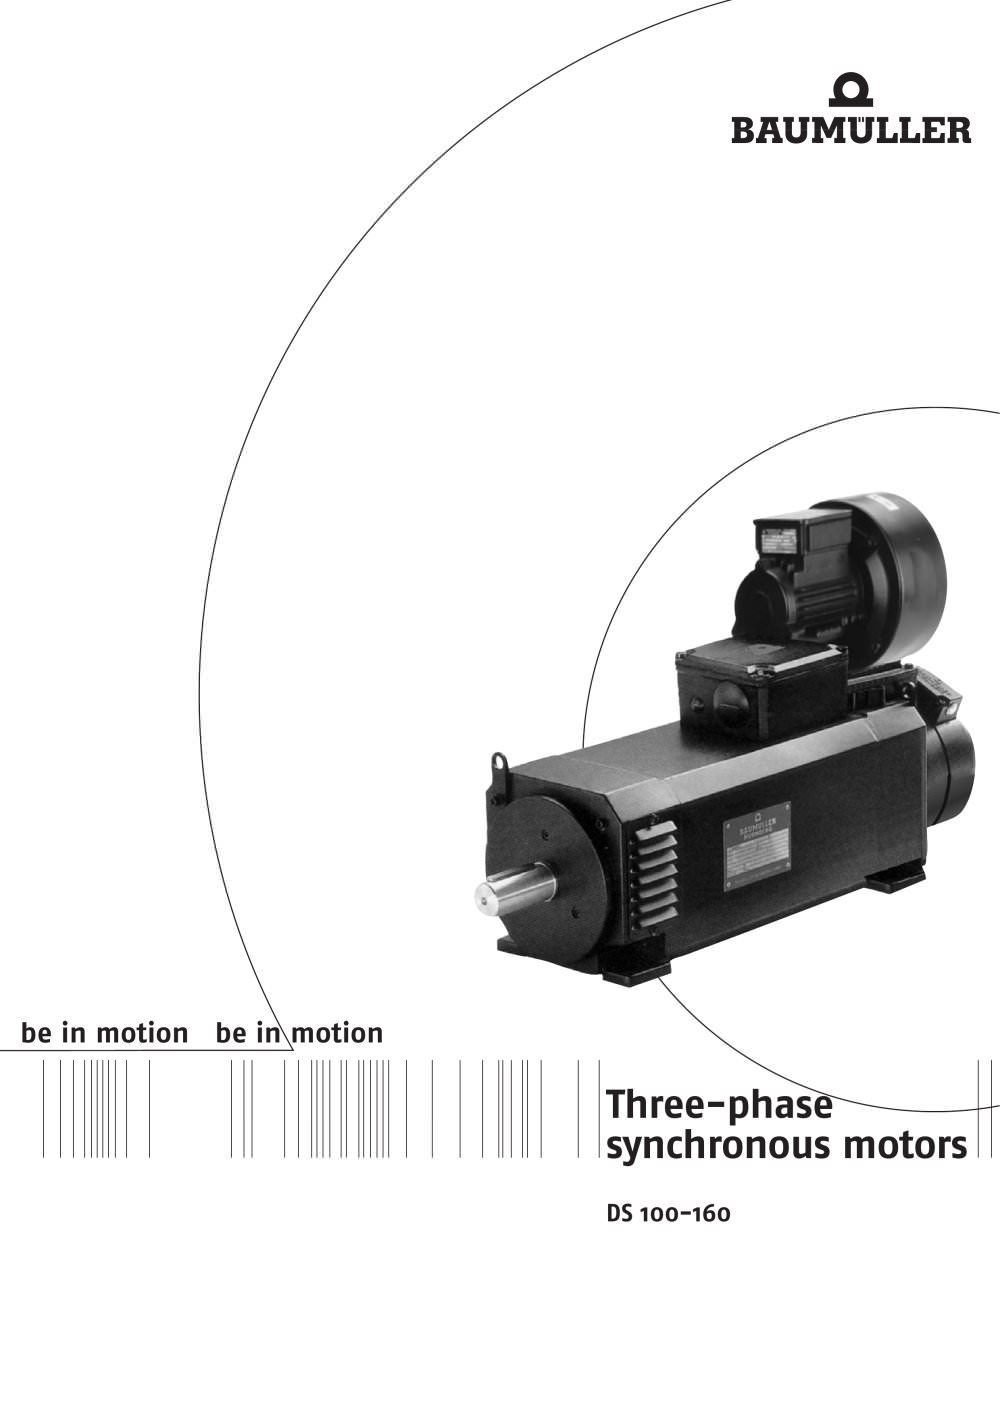 Three phase synchronous motors DS 100-160 - 1 / 36 Pages